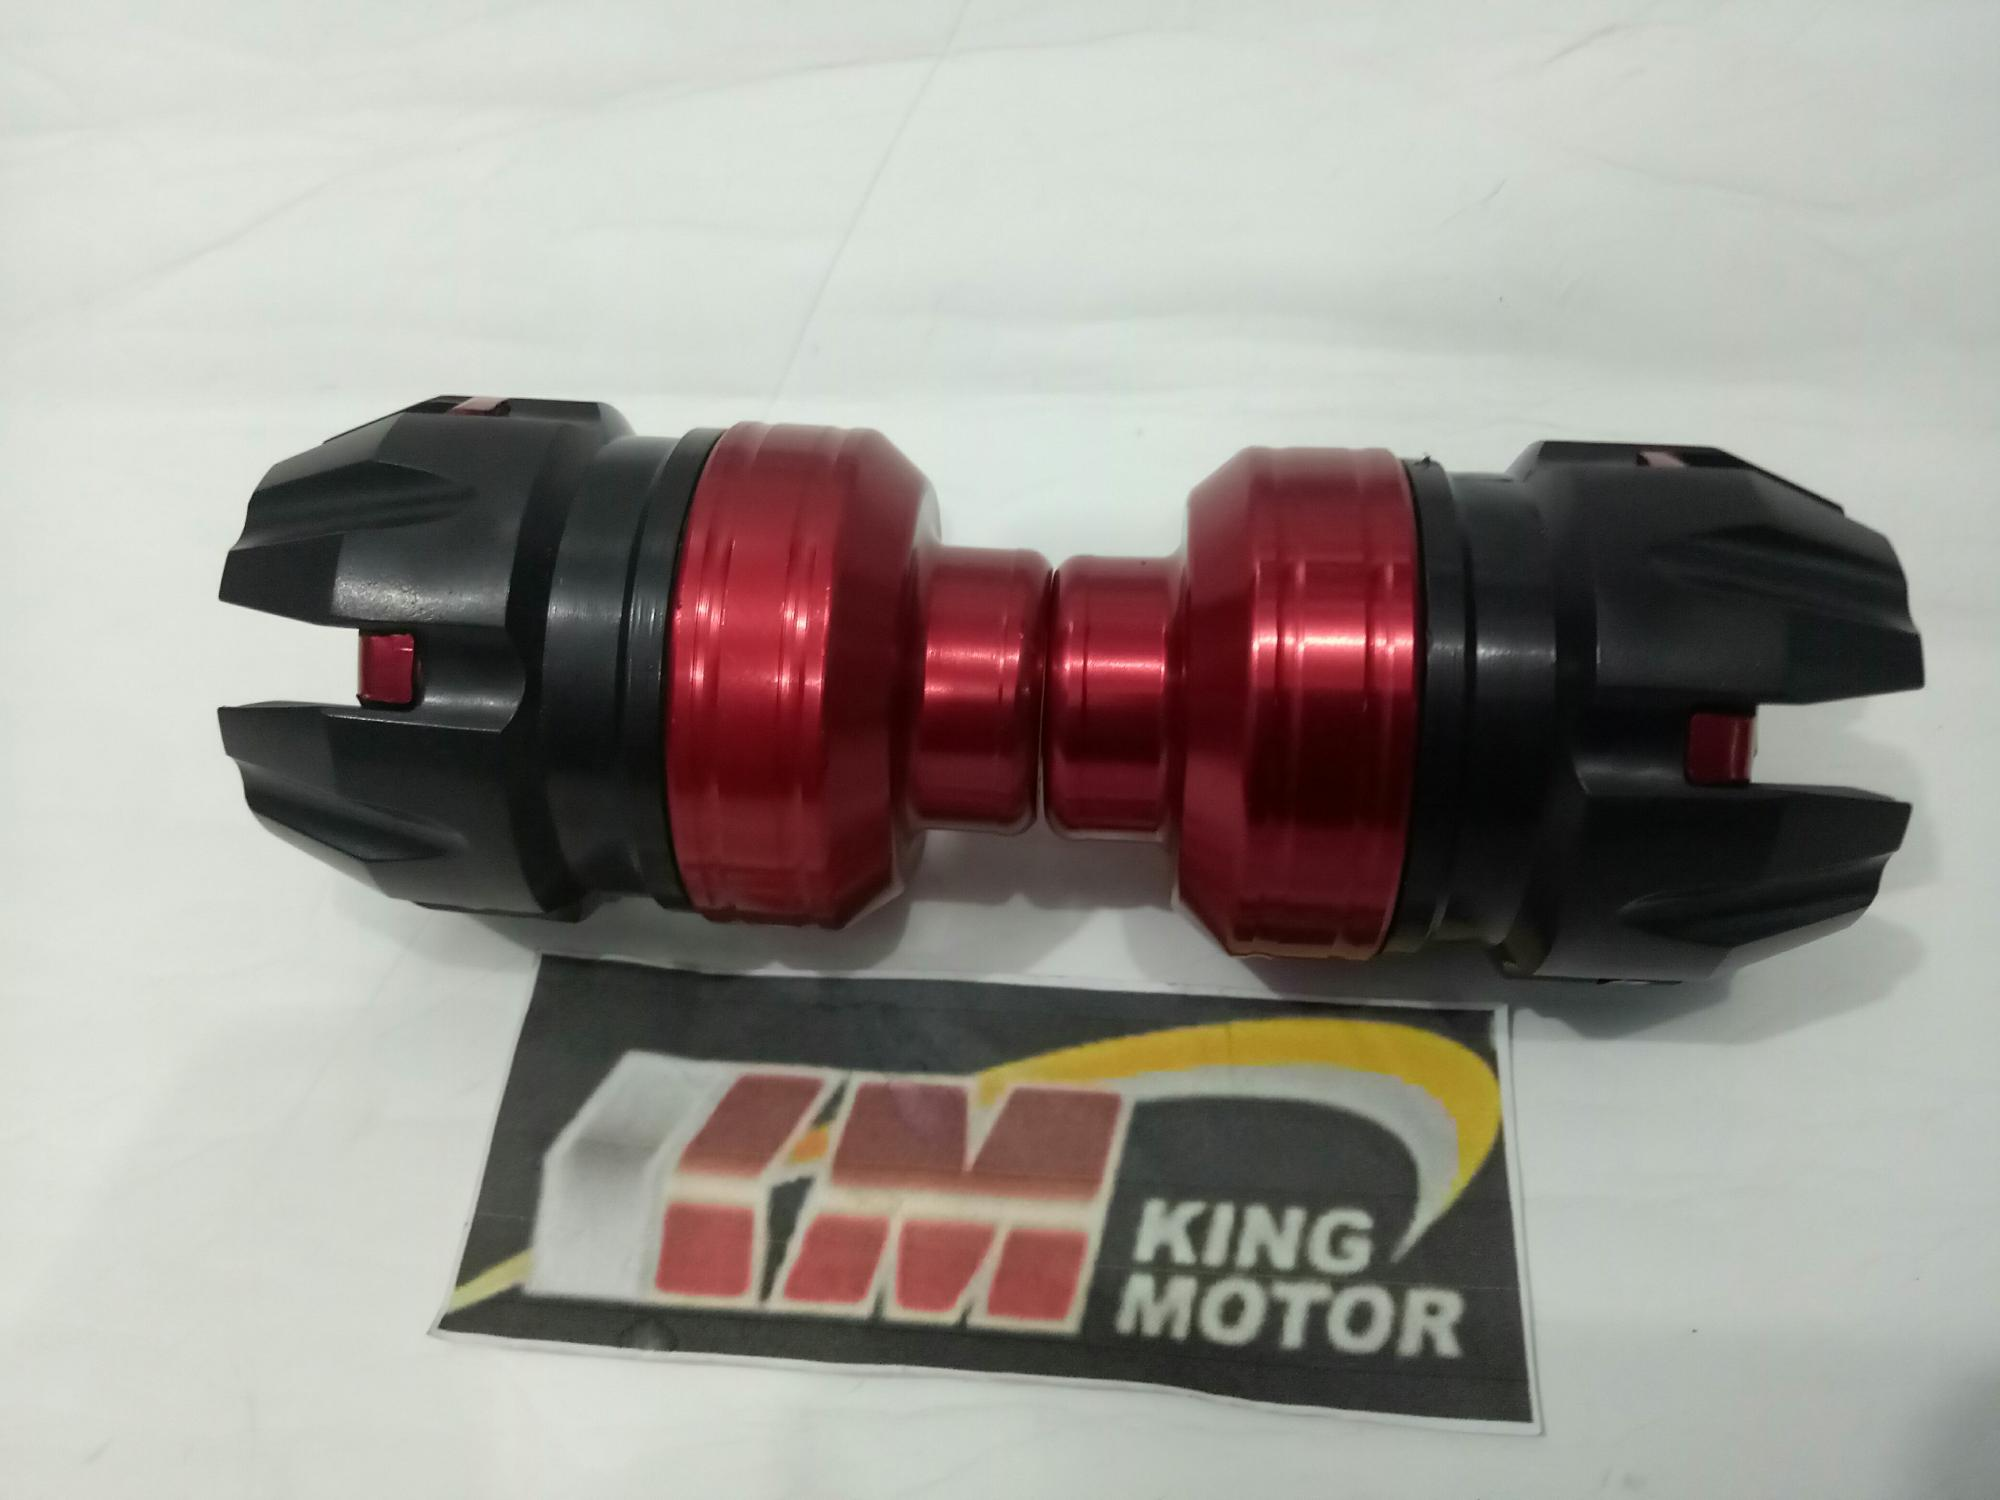 Jalu As Roda Size L Merah By King Motor Kresek.